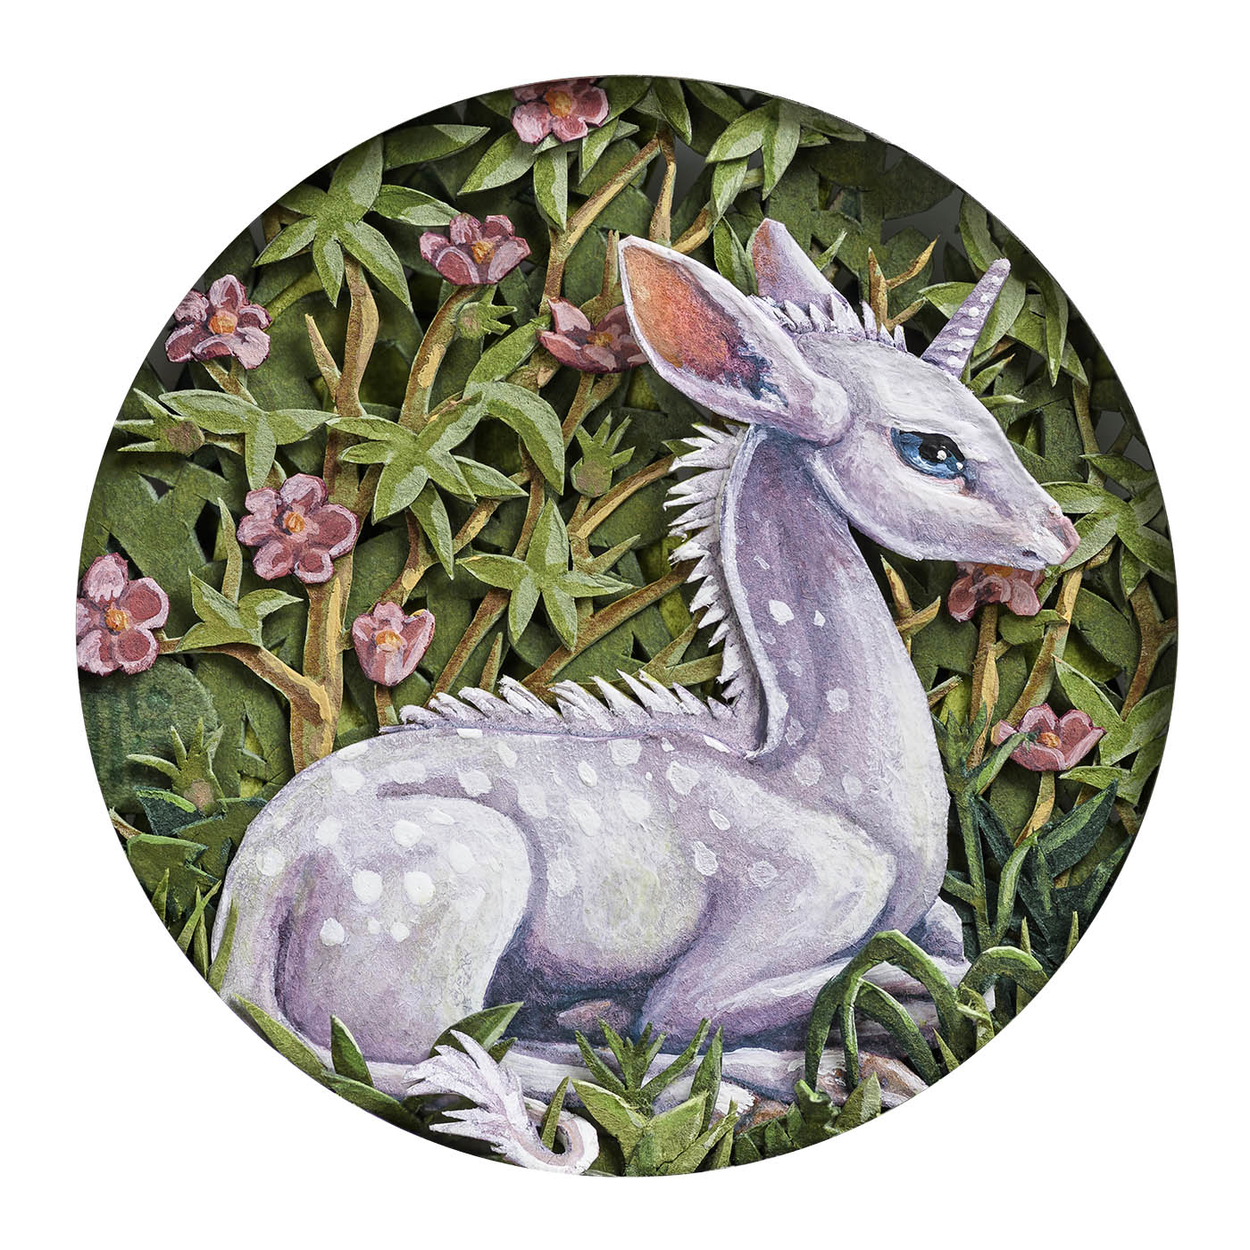 Unicorn Miniature Painting Artwork by Nicole Grosjean